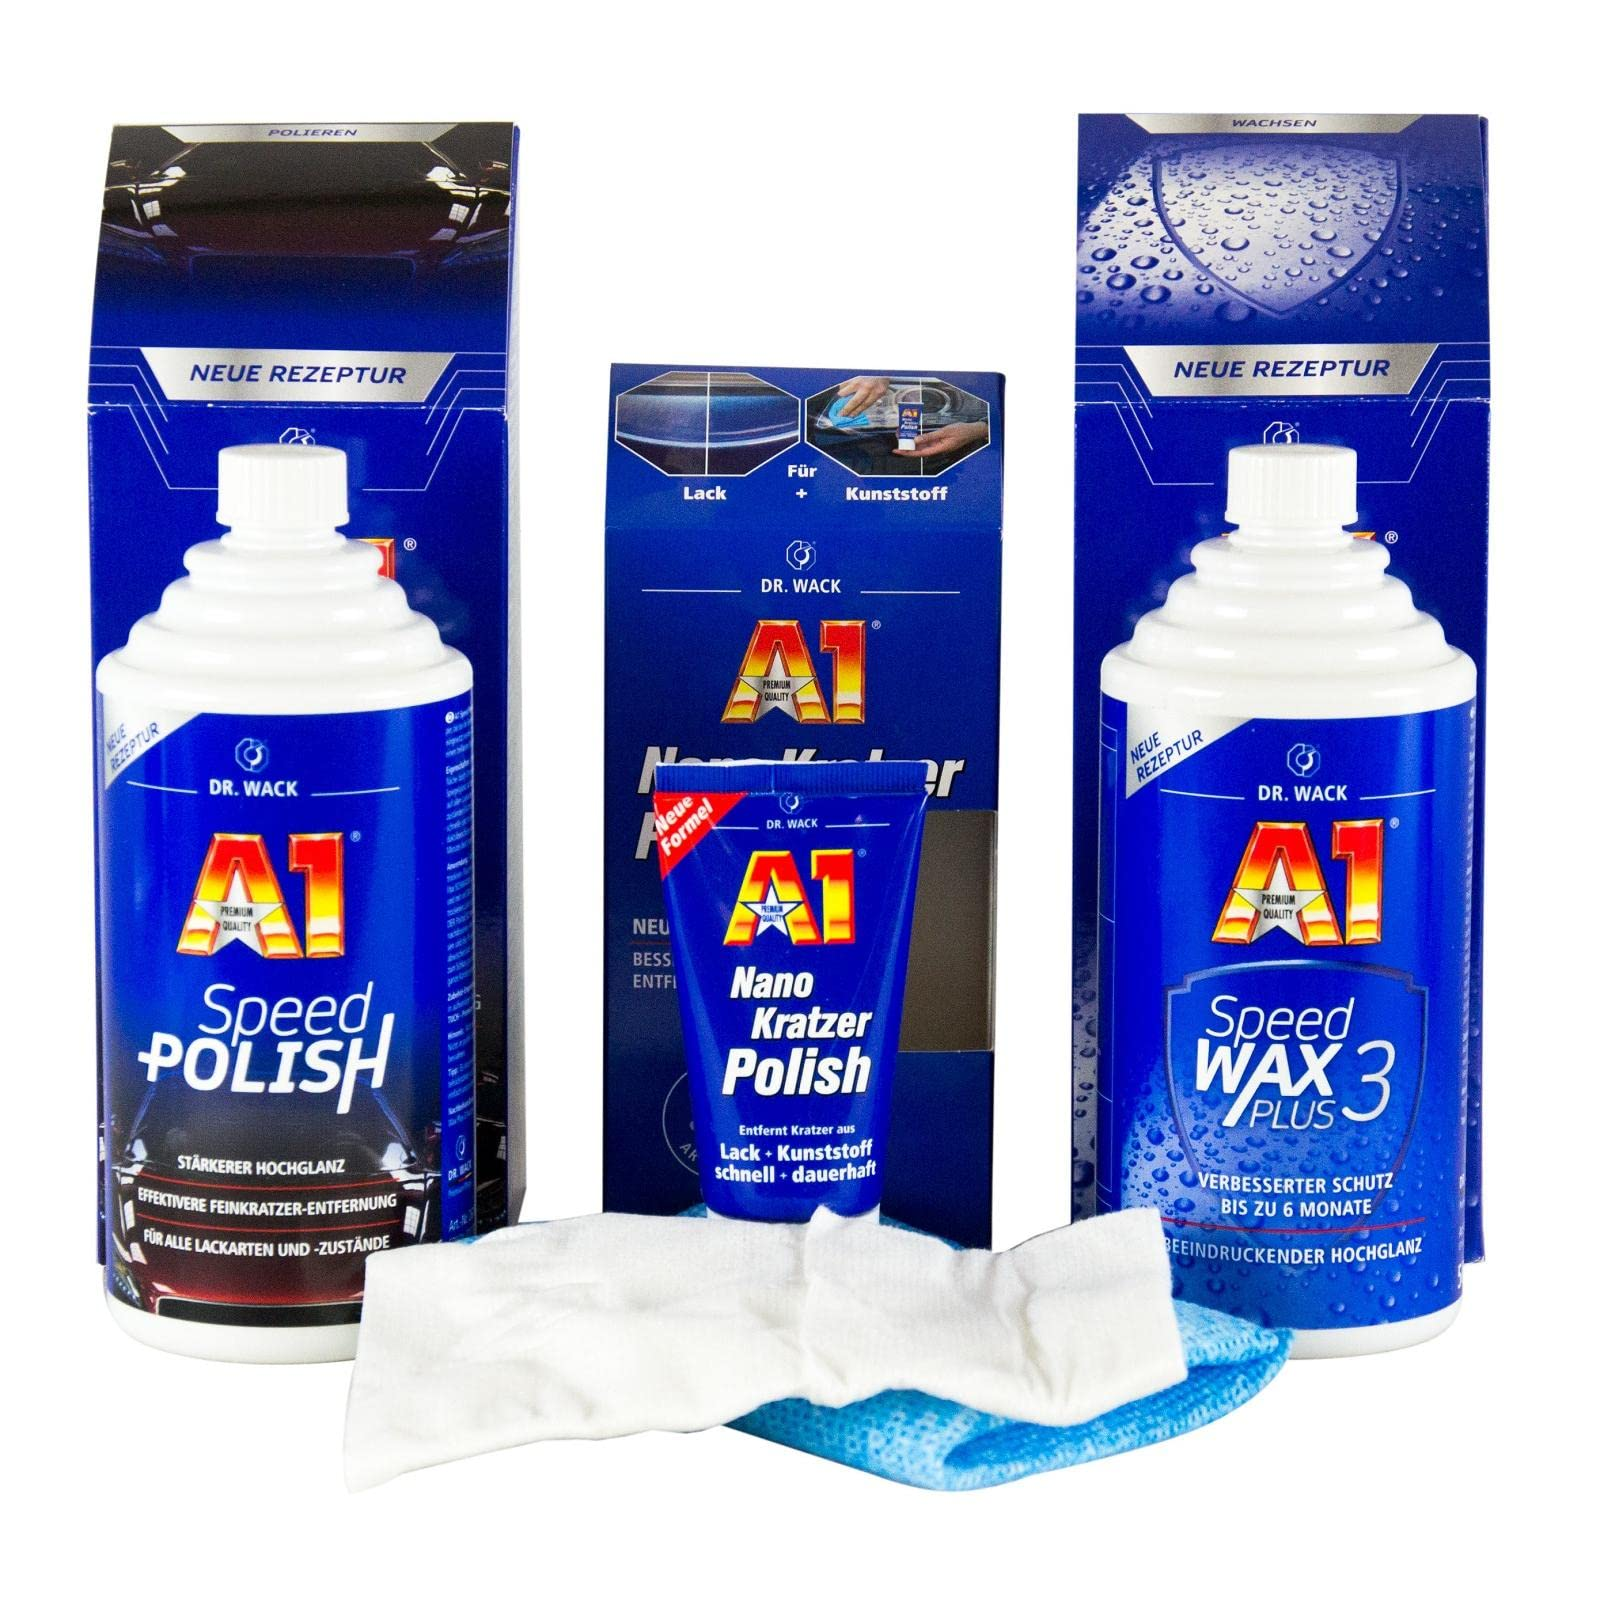 DR. WACK A1 Speed Polish 500 ml & Speed Wax Plus 3 500 ml & Nano Kratzer Polish von Dr. Wack